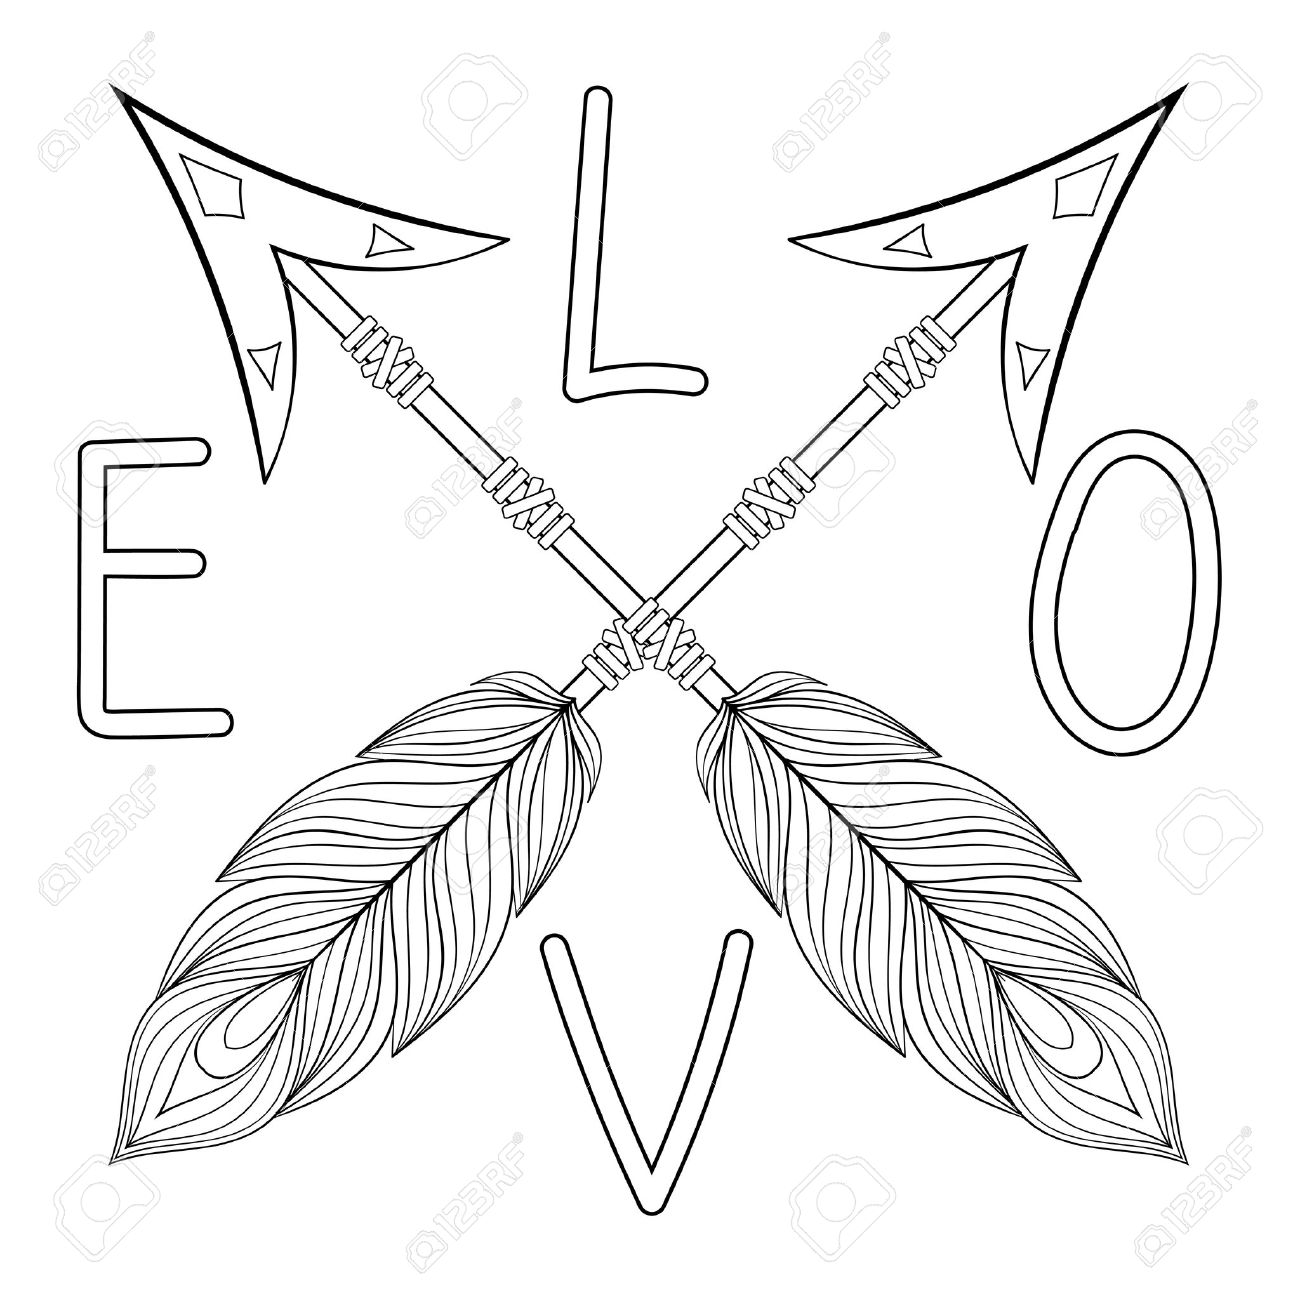 1300x1300 Bohemian Love Arrow Handpainted Sign With Feathers. Hand Drawn